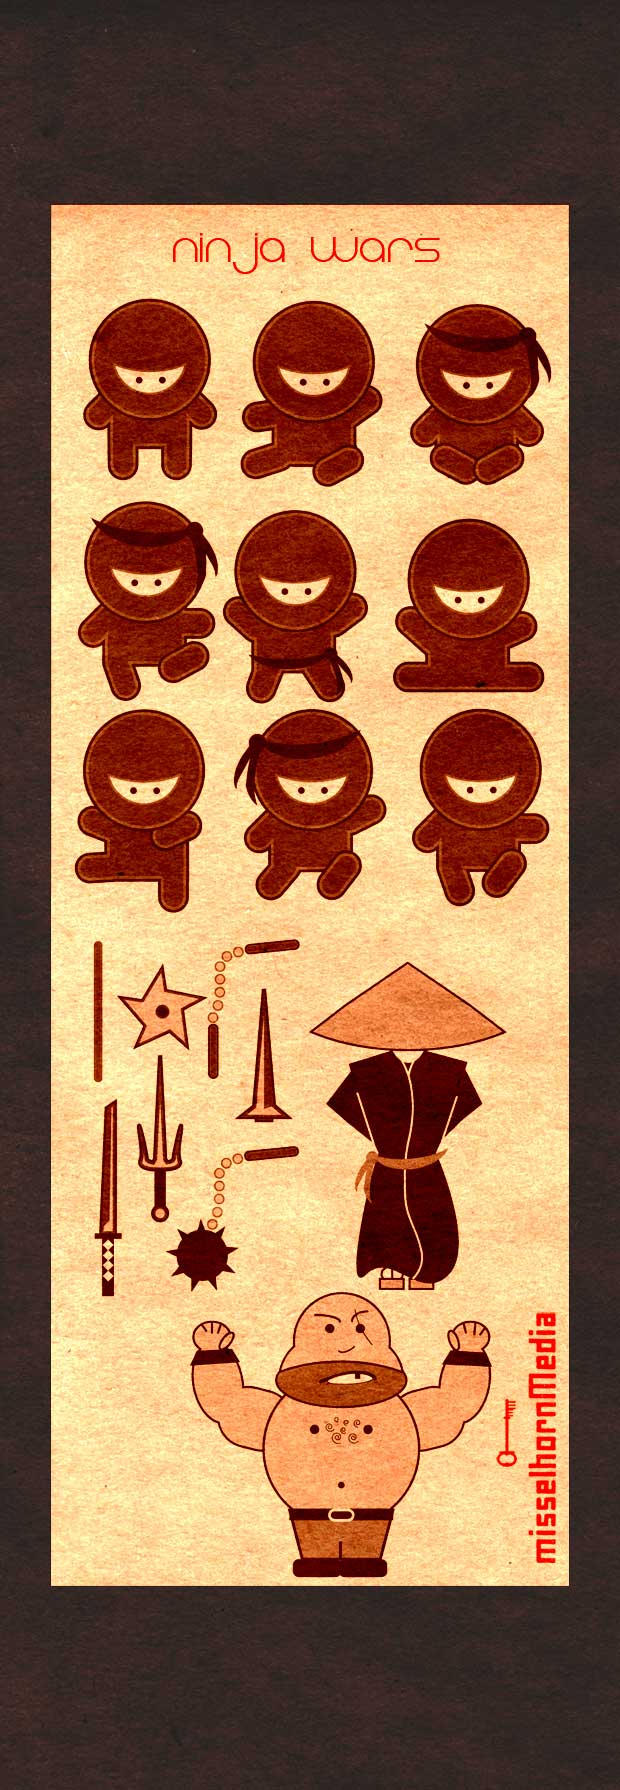 Photoshop Brush Ninja Wars by cwylie0